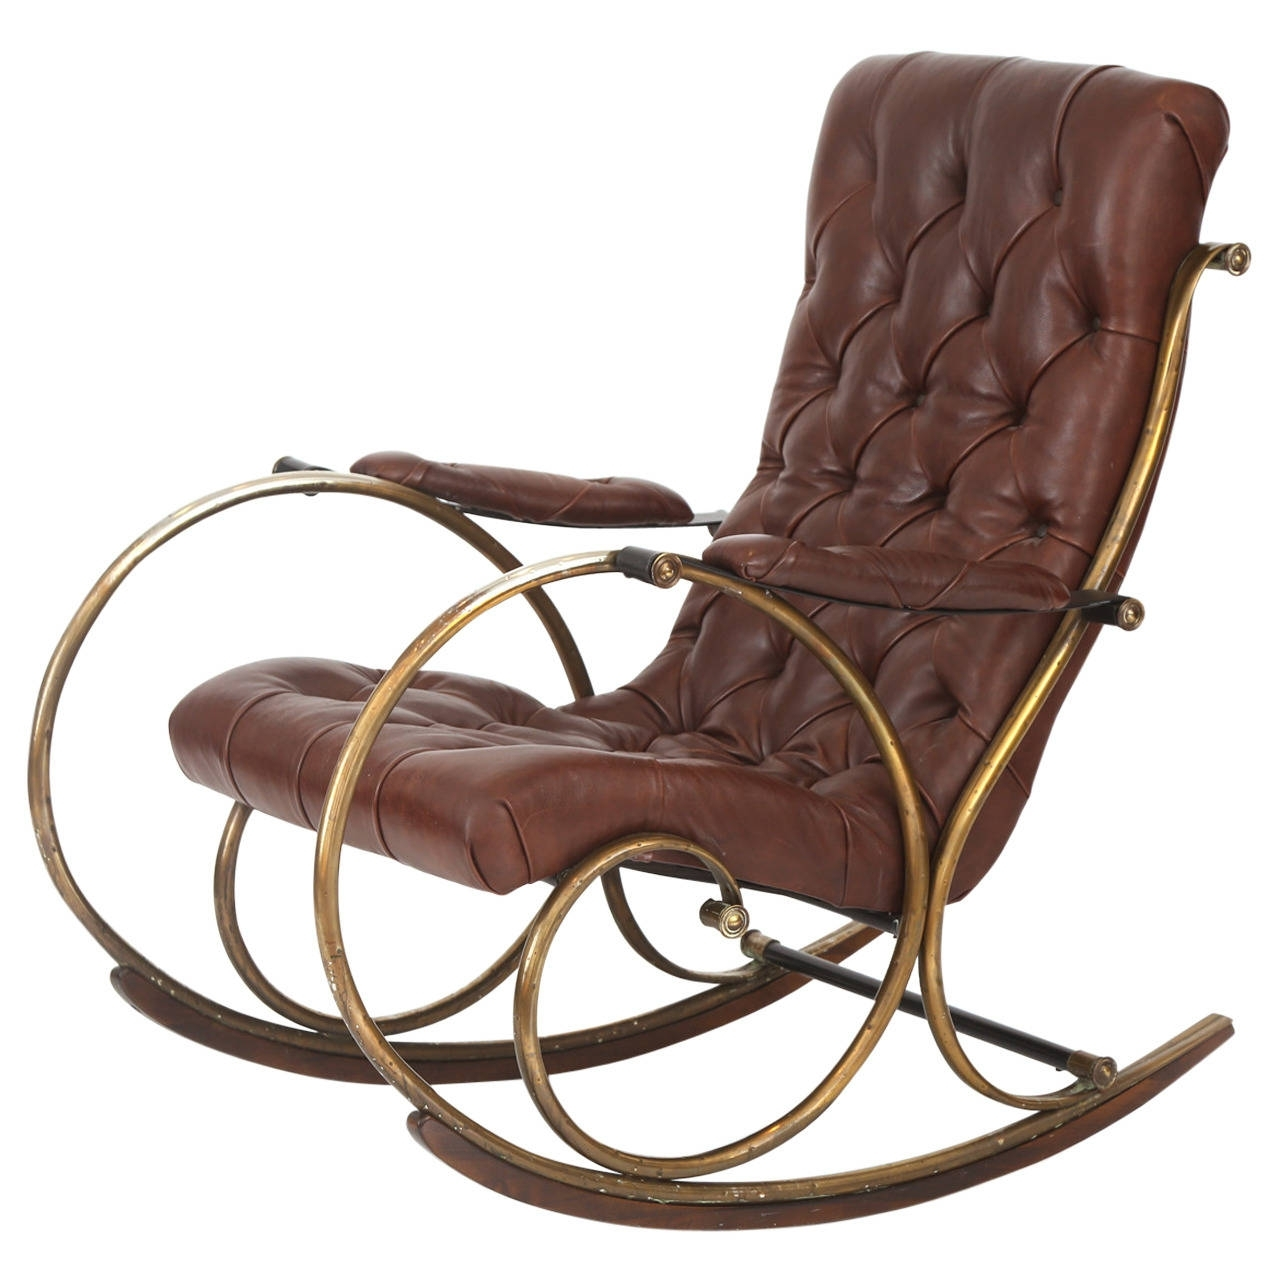 Inspiration about Leather Brass And Wood Rocking Chairwoodard For Sale At 1Stdibs For Patio Wooden Rocking Chairs (#9 of 15)